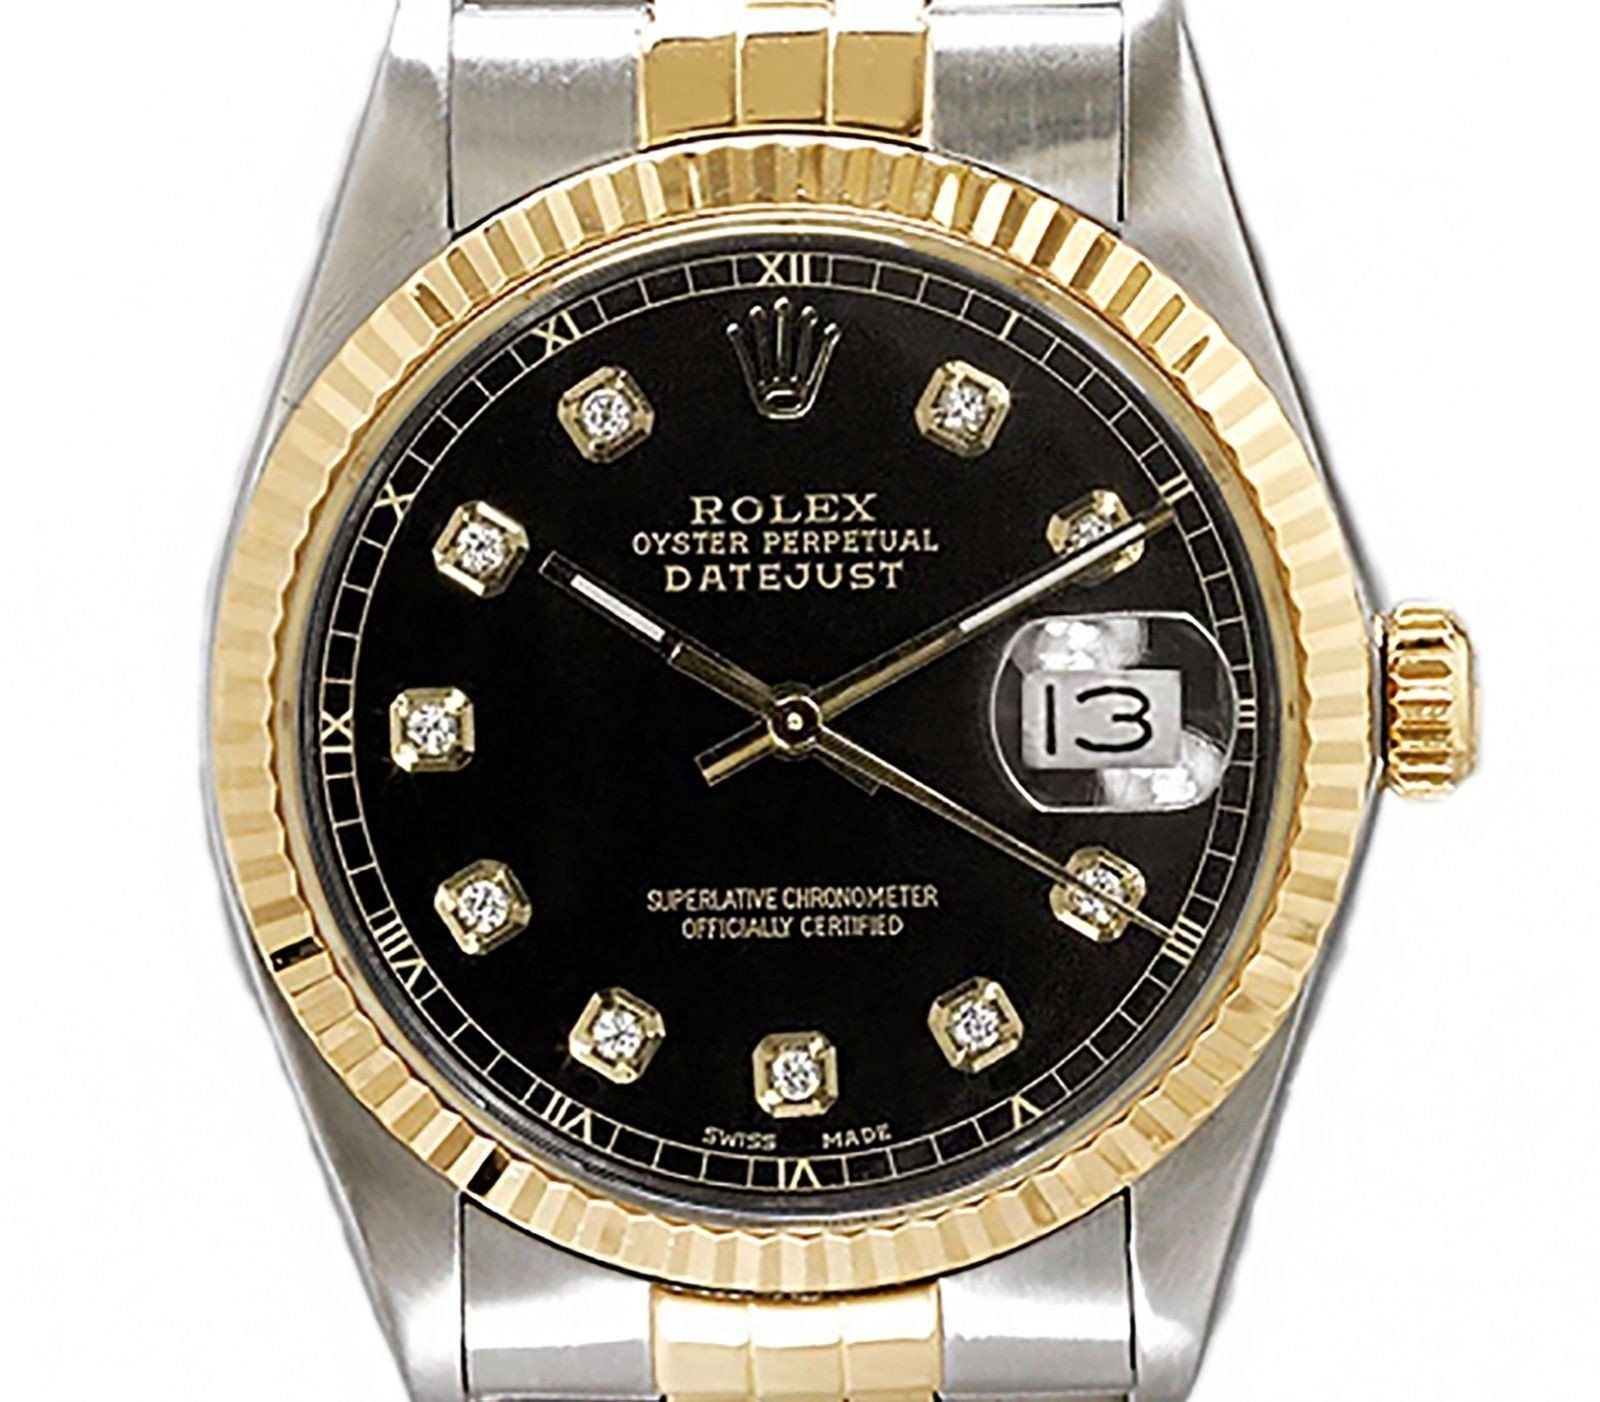 Rolex Men S Datejust Two Tone 18k Gold Fluted Bezel With Custom Black Diamond Dial Rolex Watches For Men Rolex Gold Flute